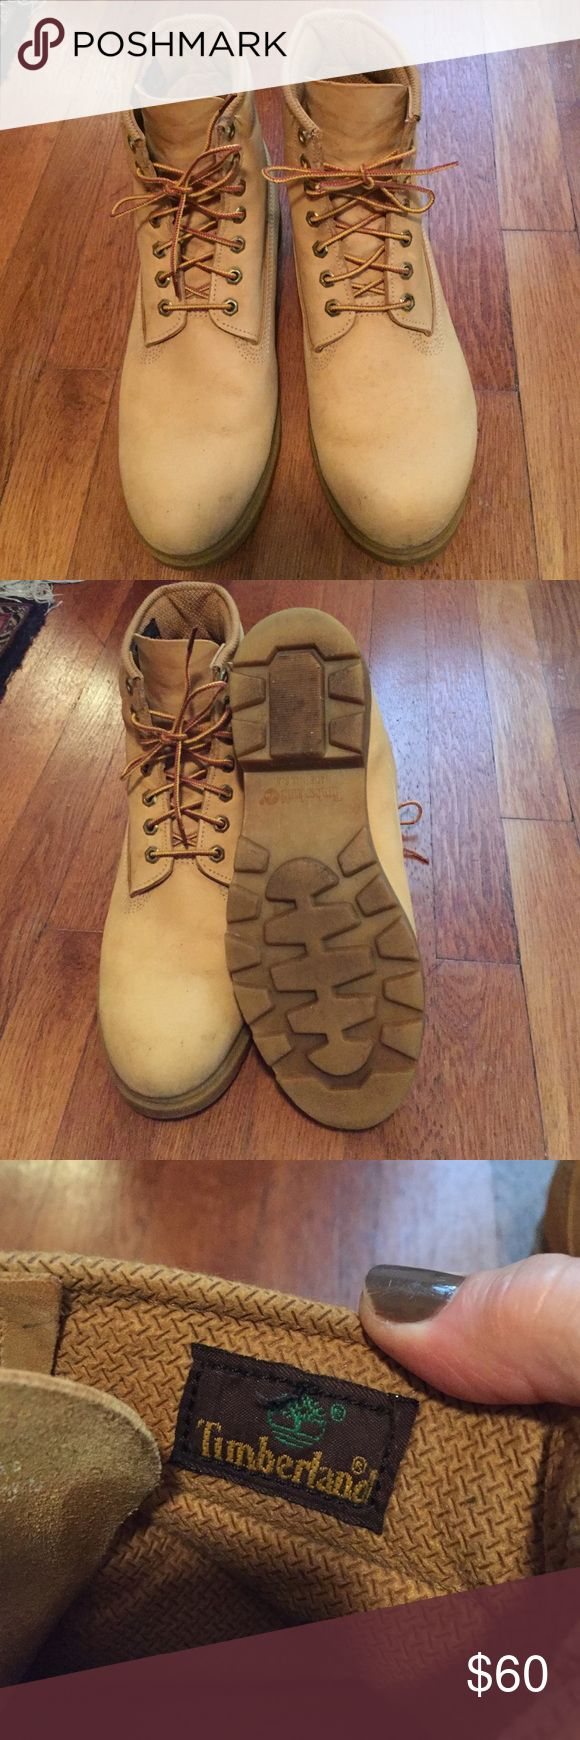 Men's Timberland Boots Men's Timberland Boots Size 10.5M. Excellent condition, gently worn. Leather upper, thinsulate lining, Lug sole. Made in the USA. Timberland Shoes Boots